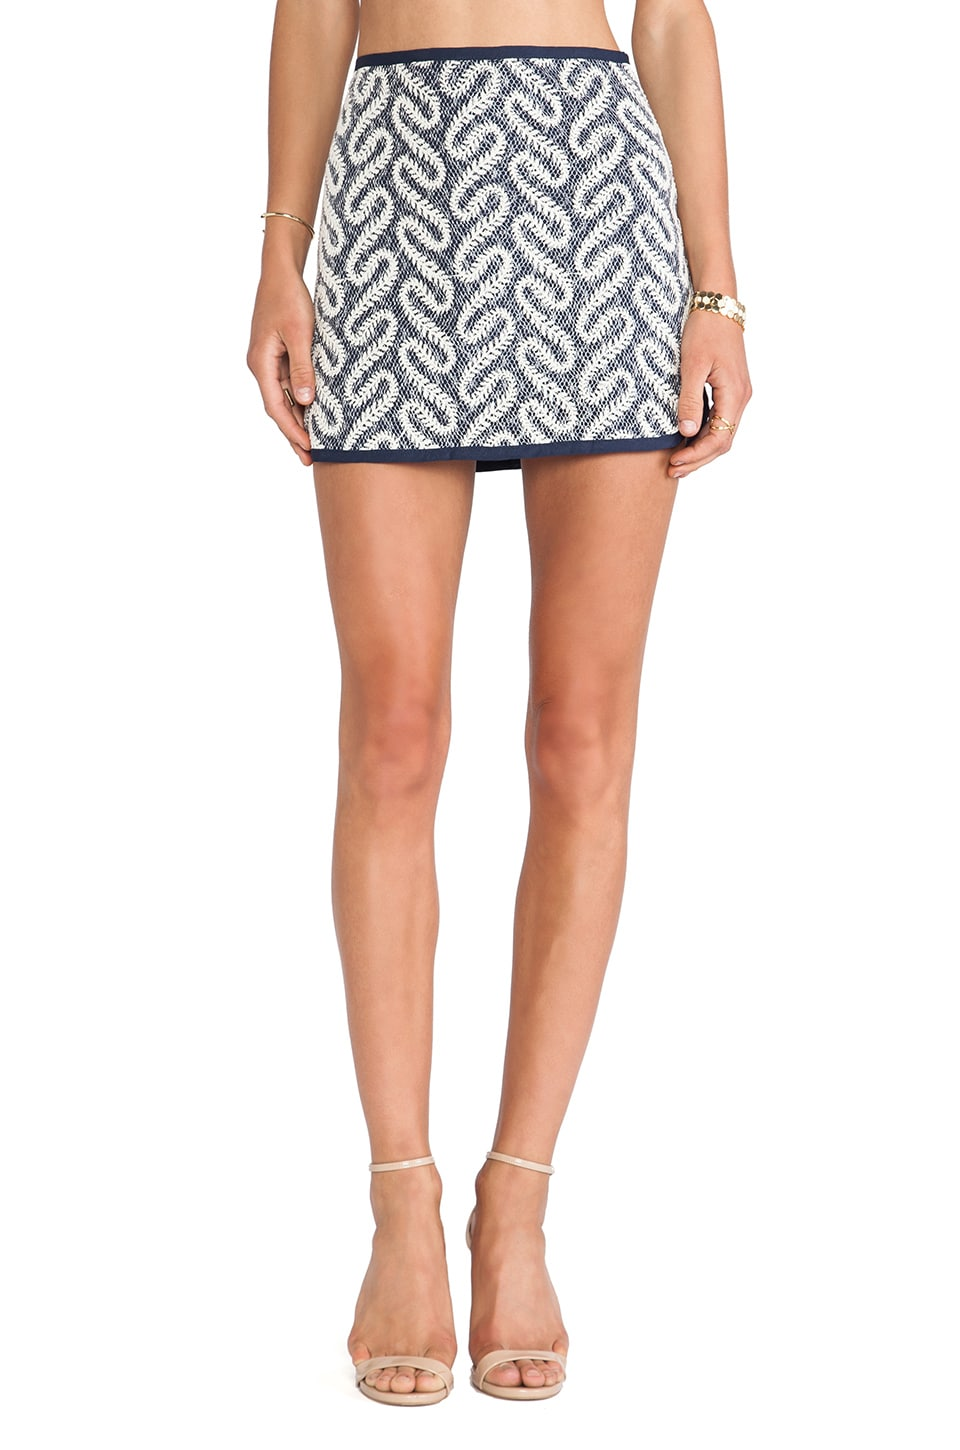 J.O.A. Swirl Printed Round Hem Skirt in Navy